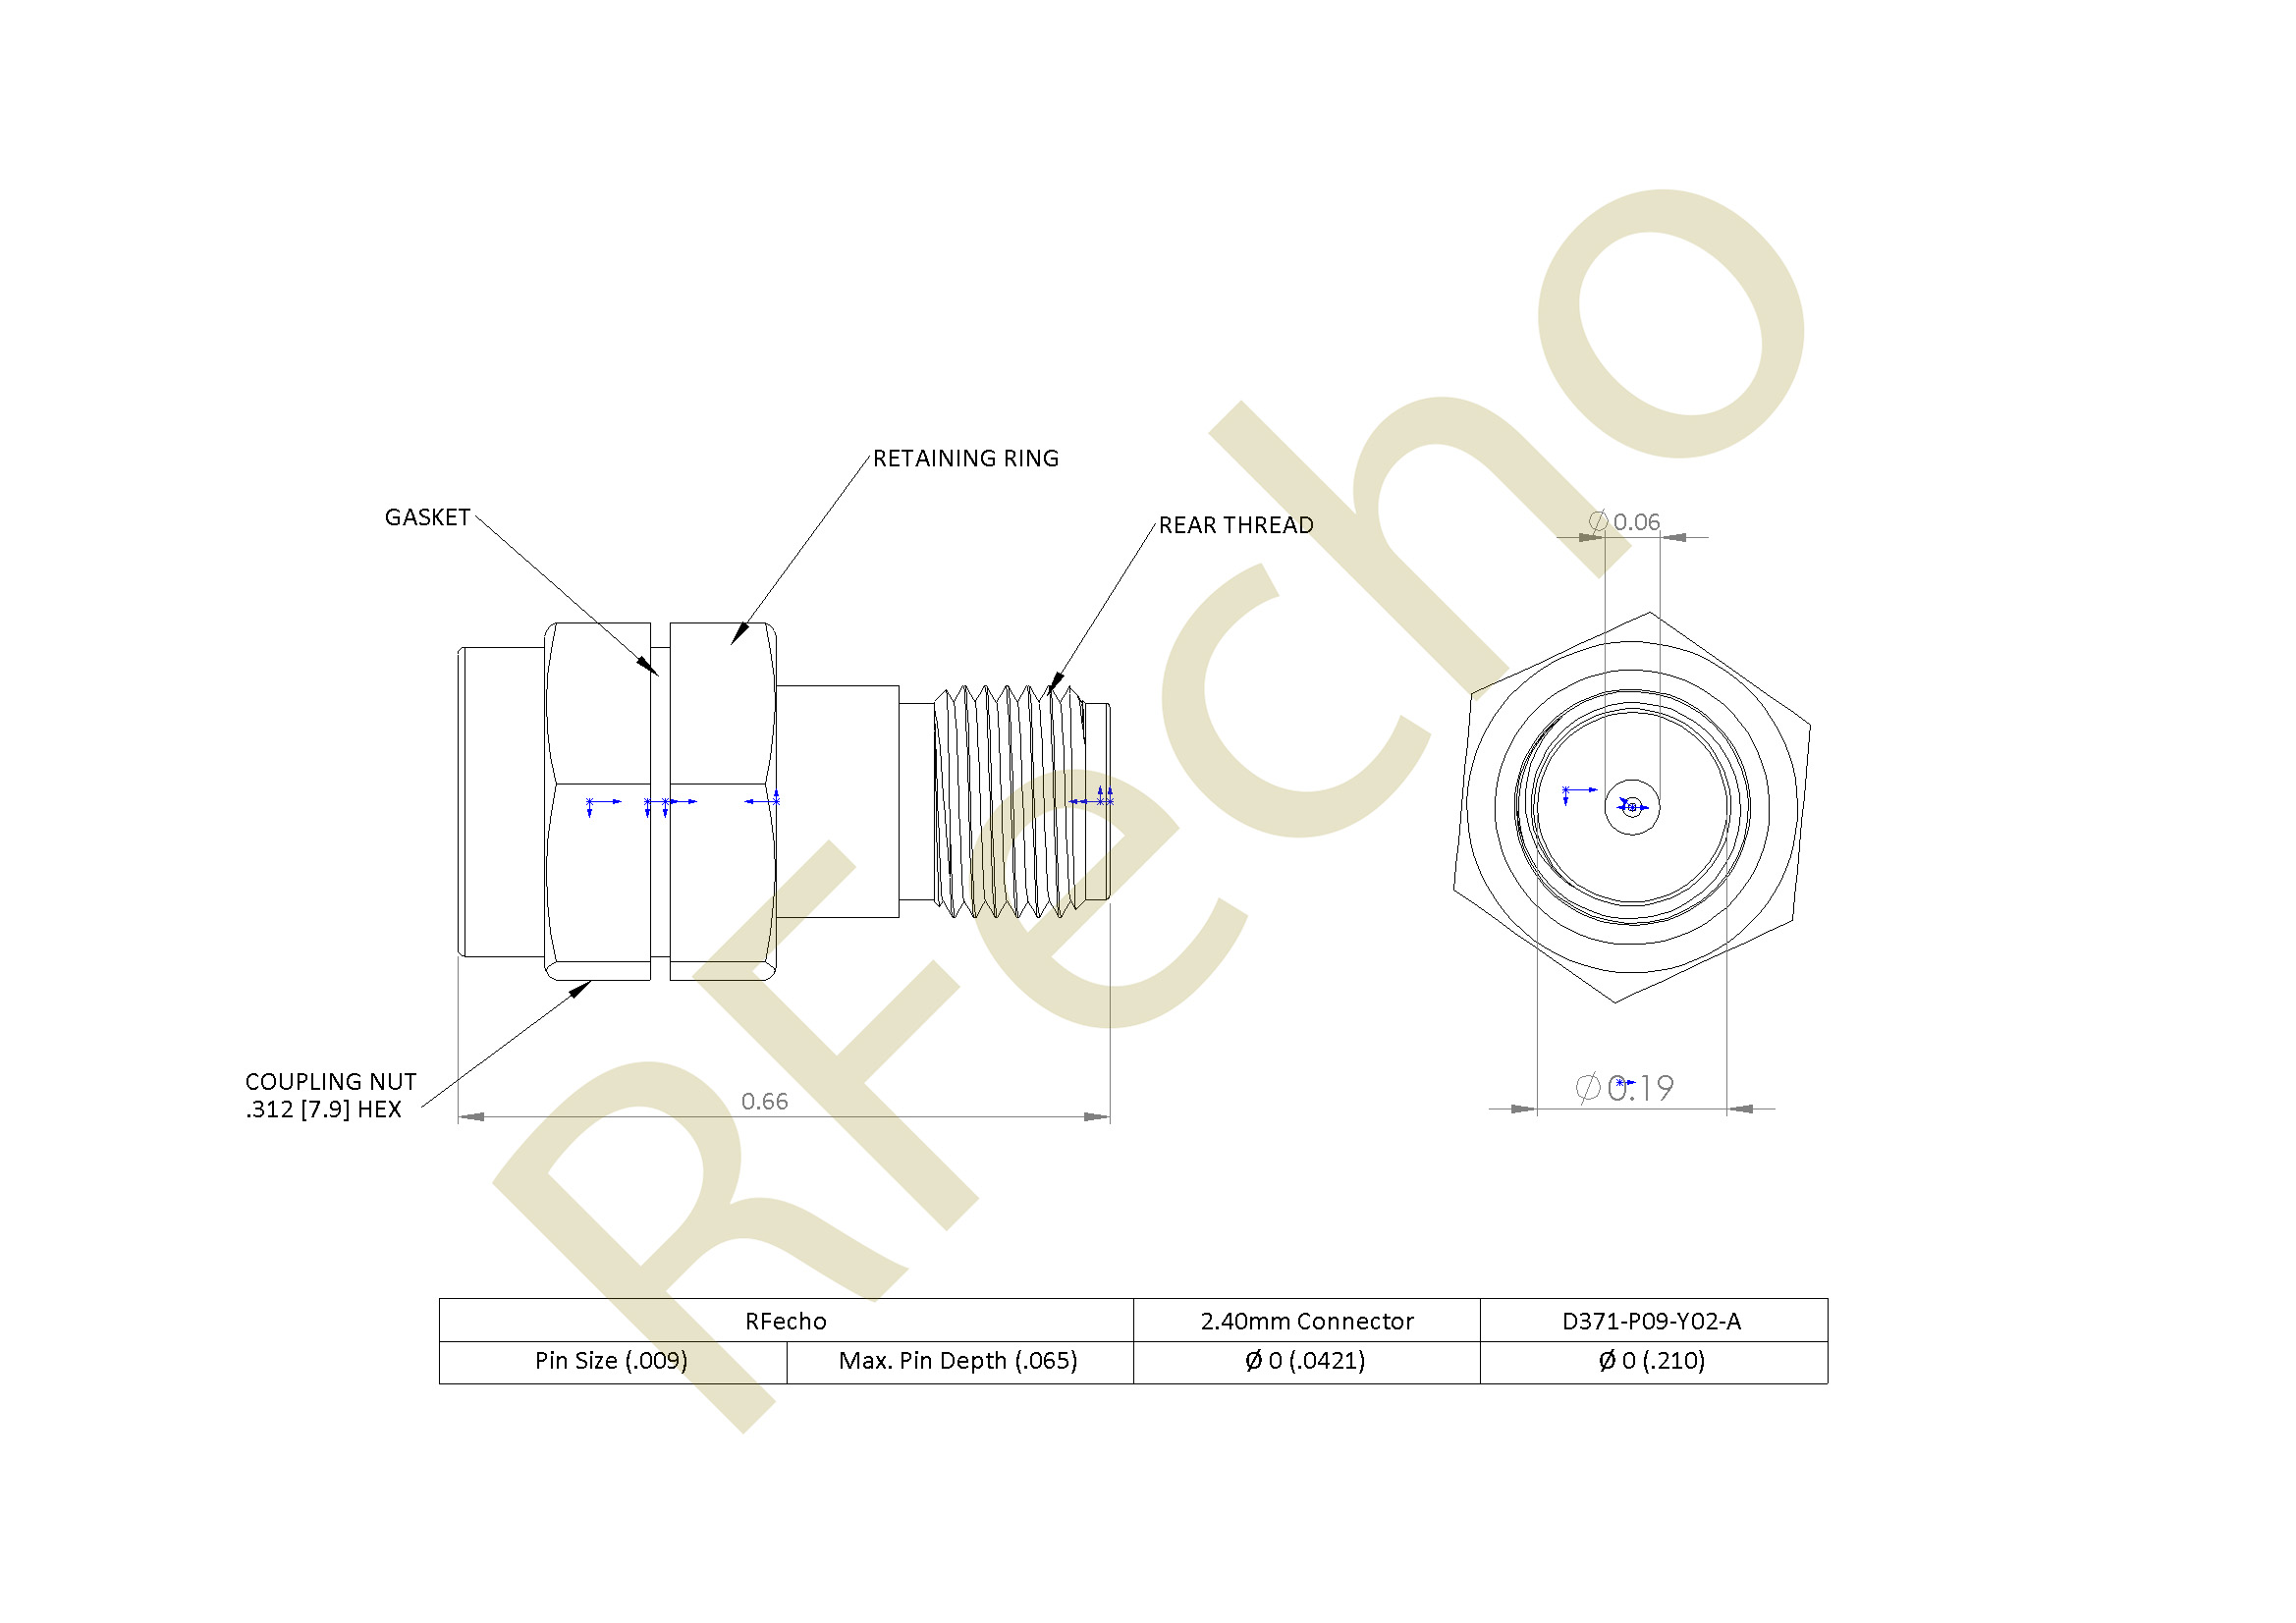 2.40mm 50 GHz, 0.009″ Accept Pin Diameter, Thread-In Male Connector